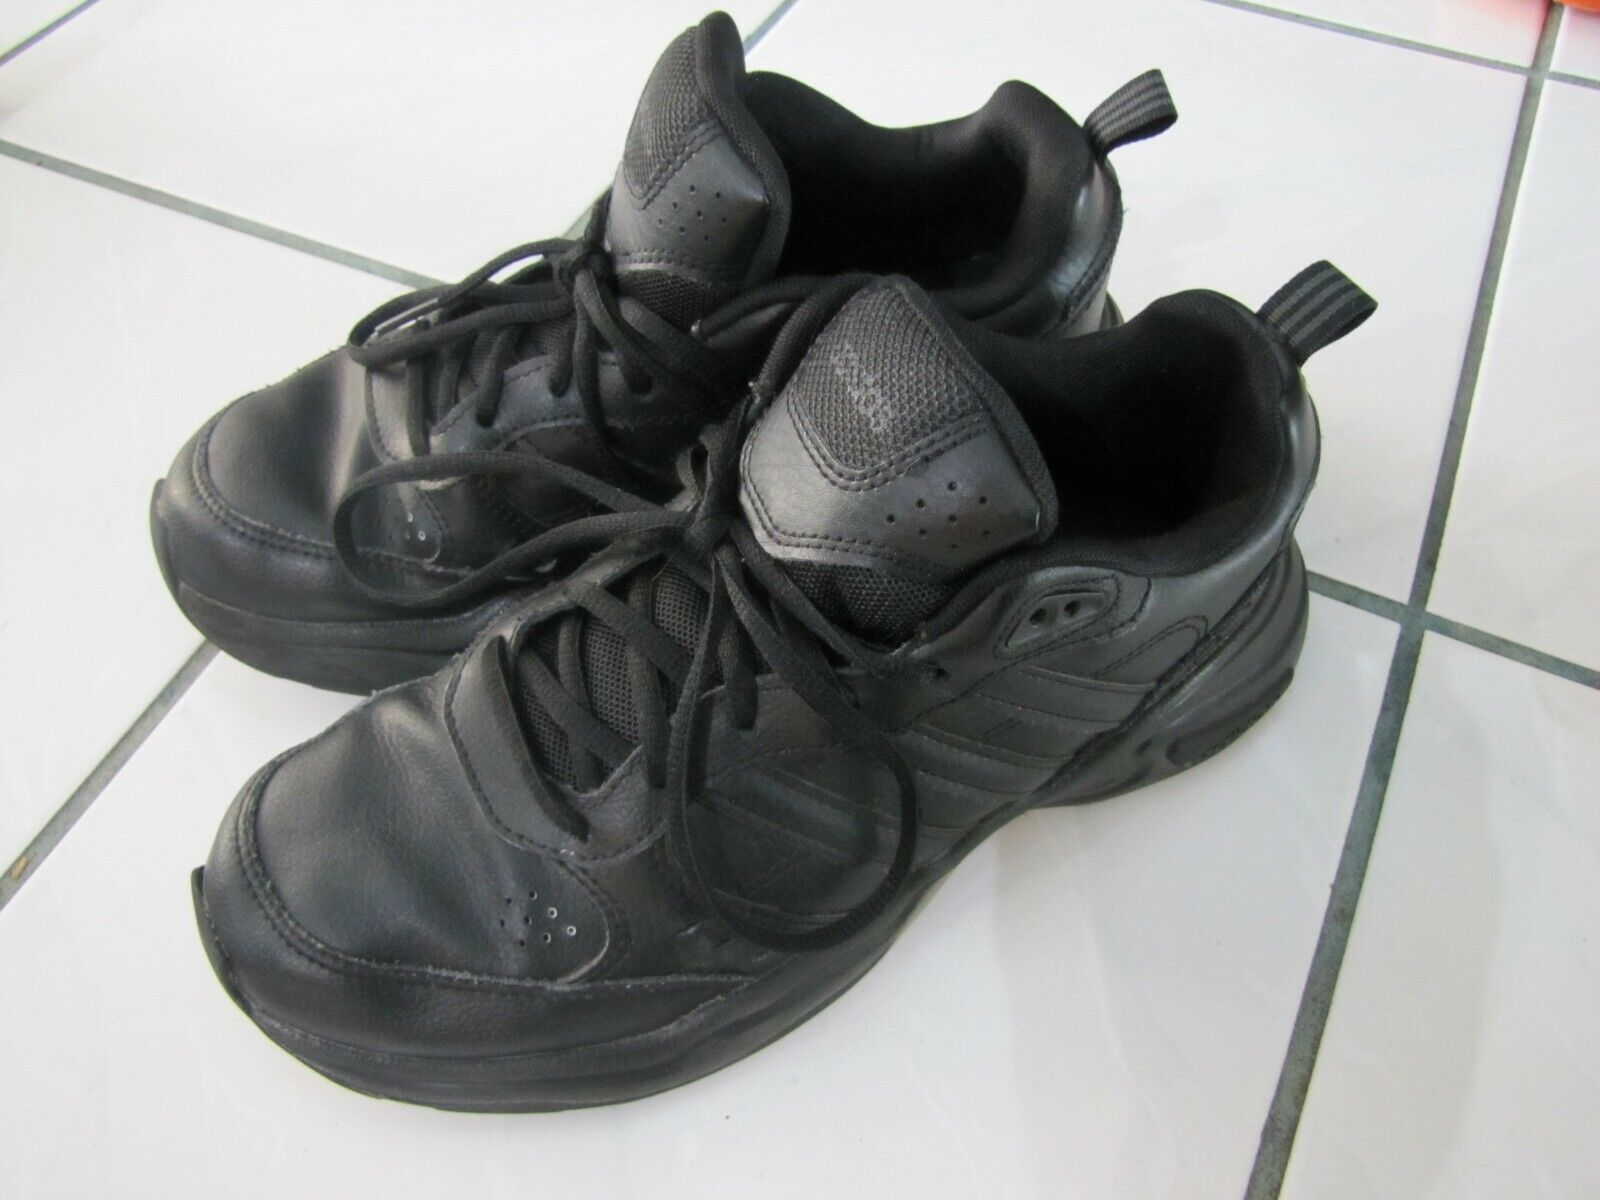 Mens Adidas Running Sneakers Black Lace up Shoes Size 8